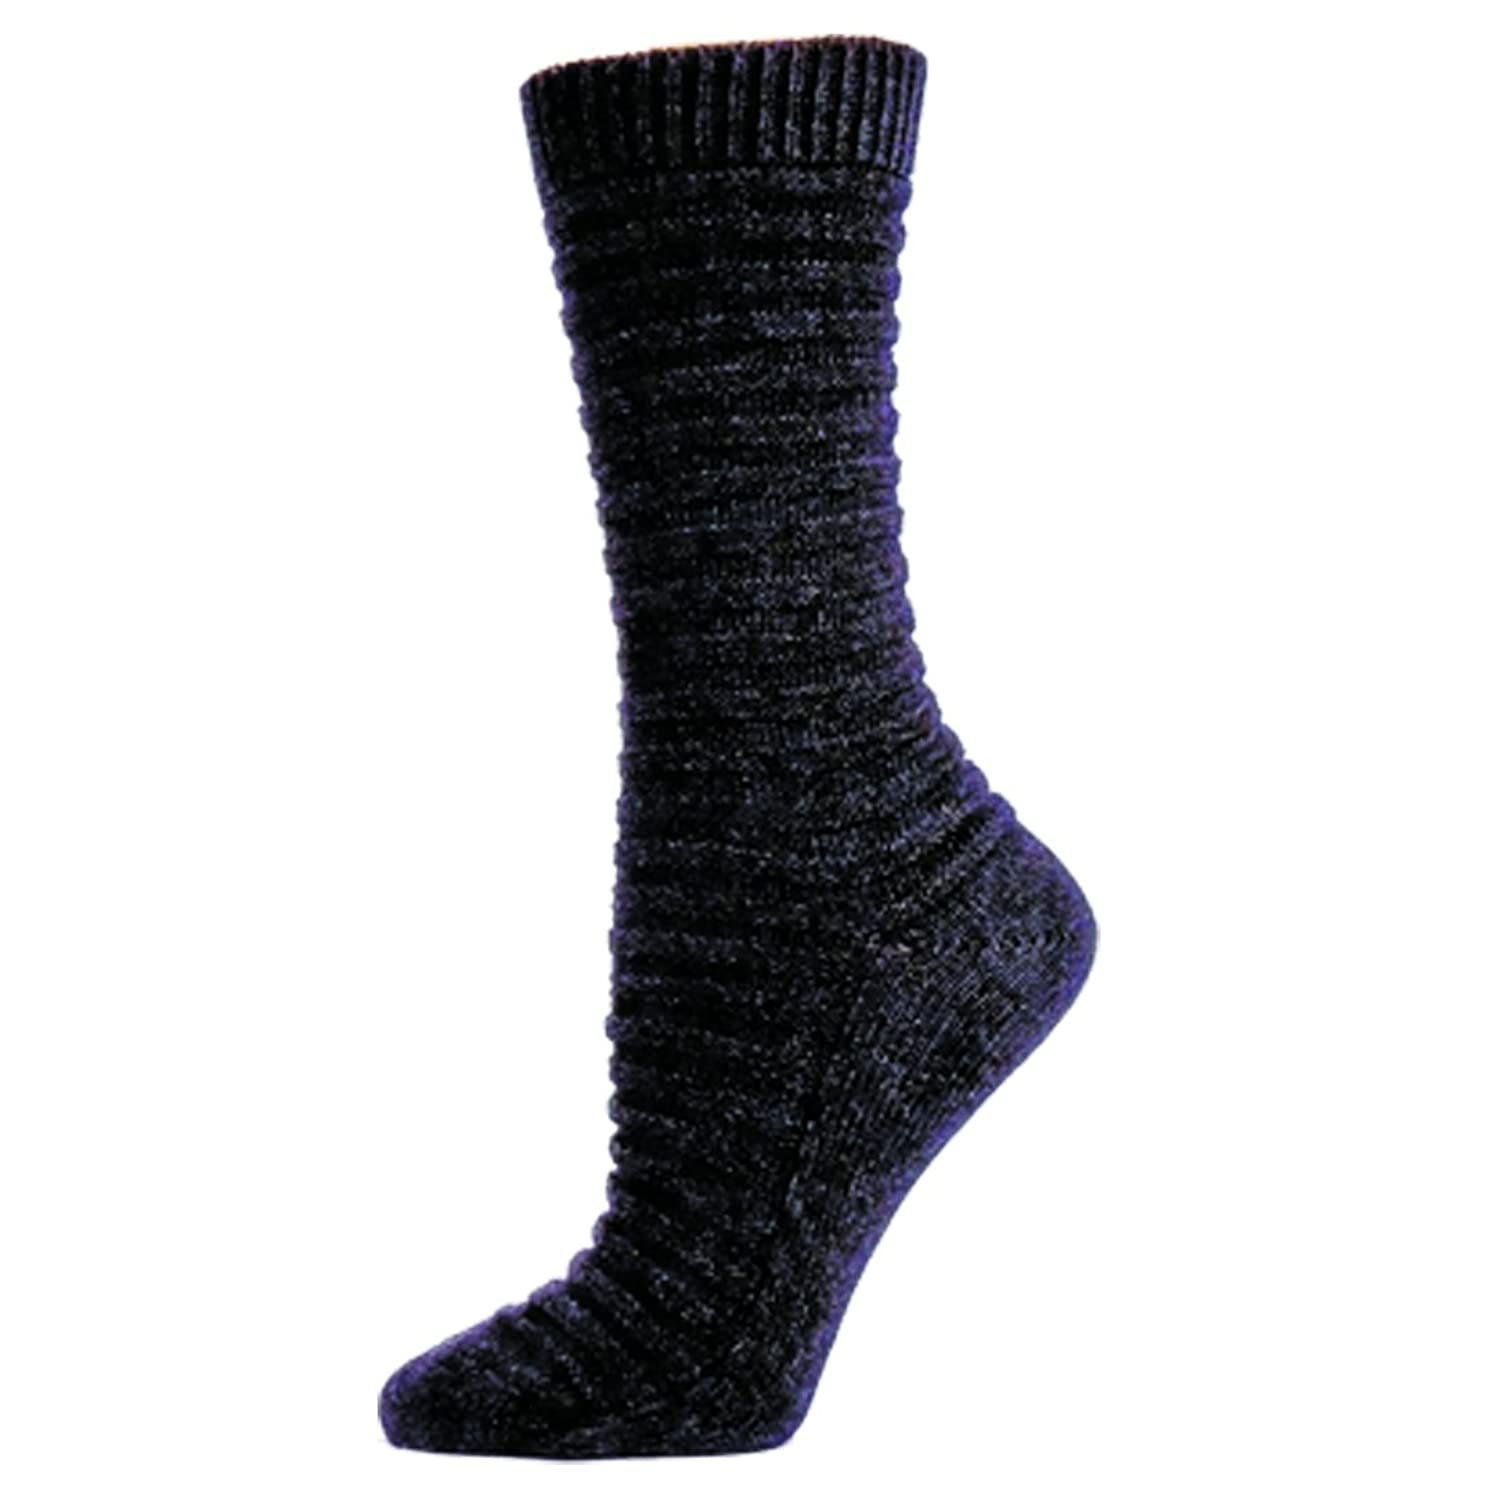 E.G. Smith Slinky Cotton Crew Womens Recycled Cotton Socks